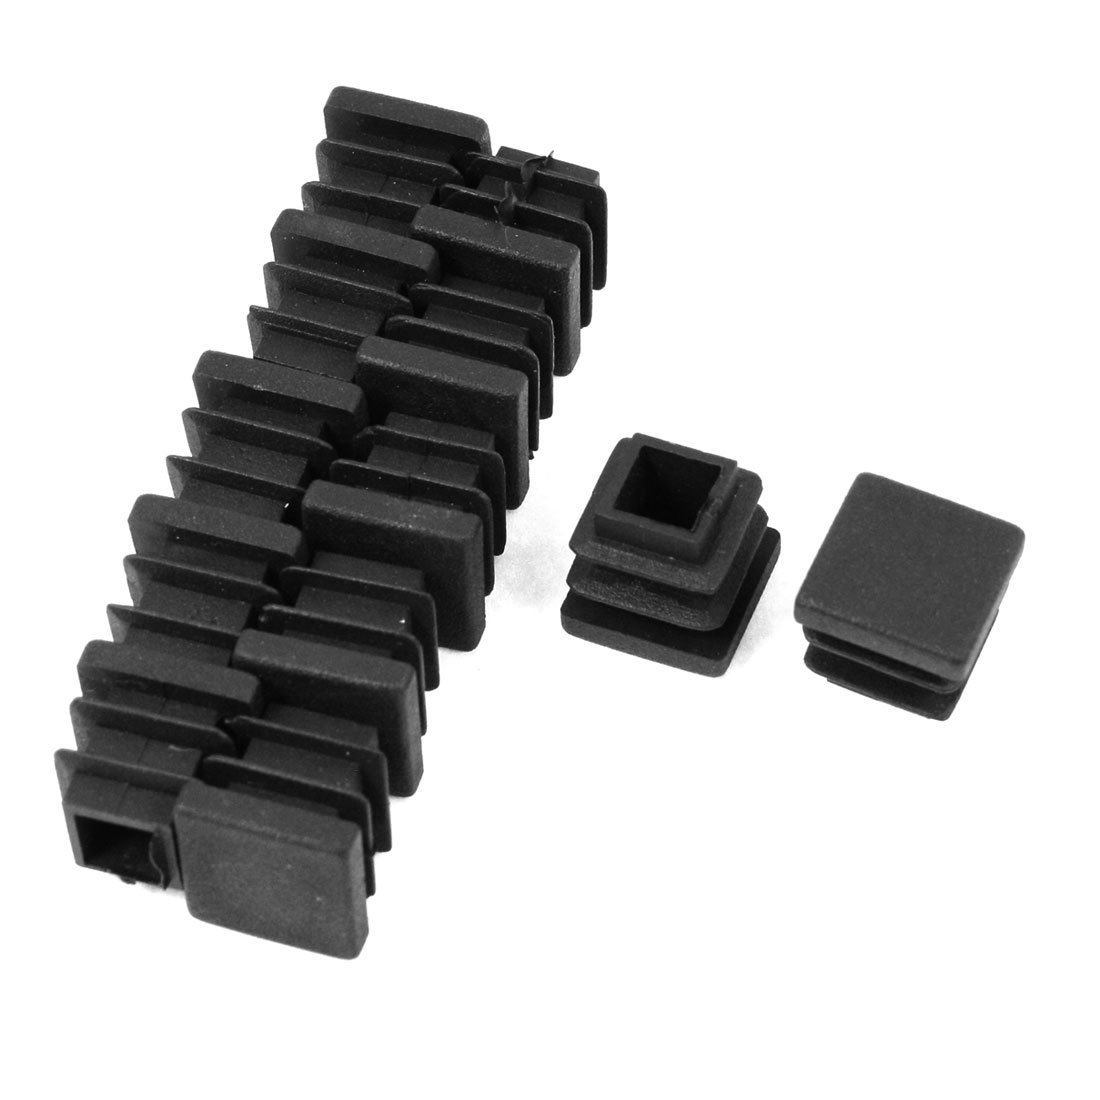 12 Pieces 16mm x 16mm Plastic Blanking End Caps Square Tubing Tube Pipe Insert